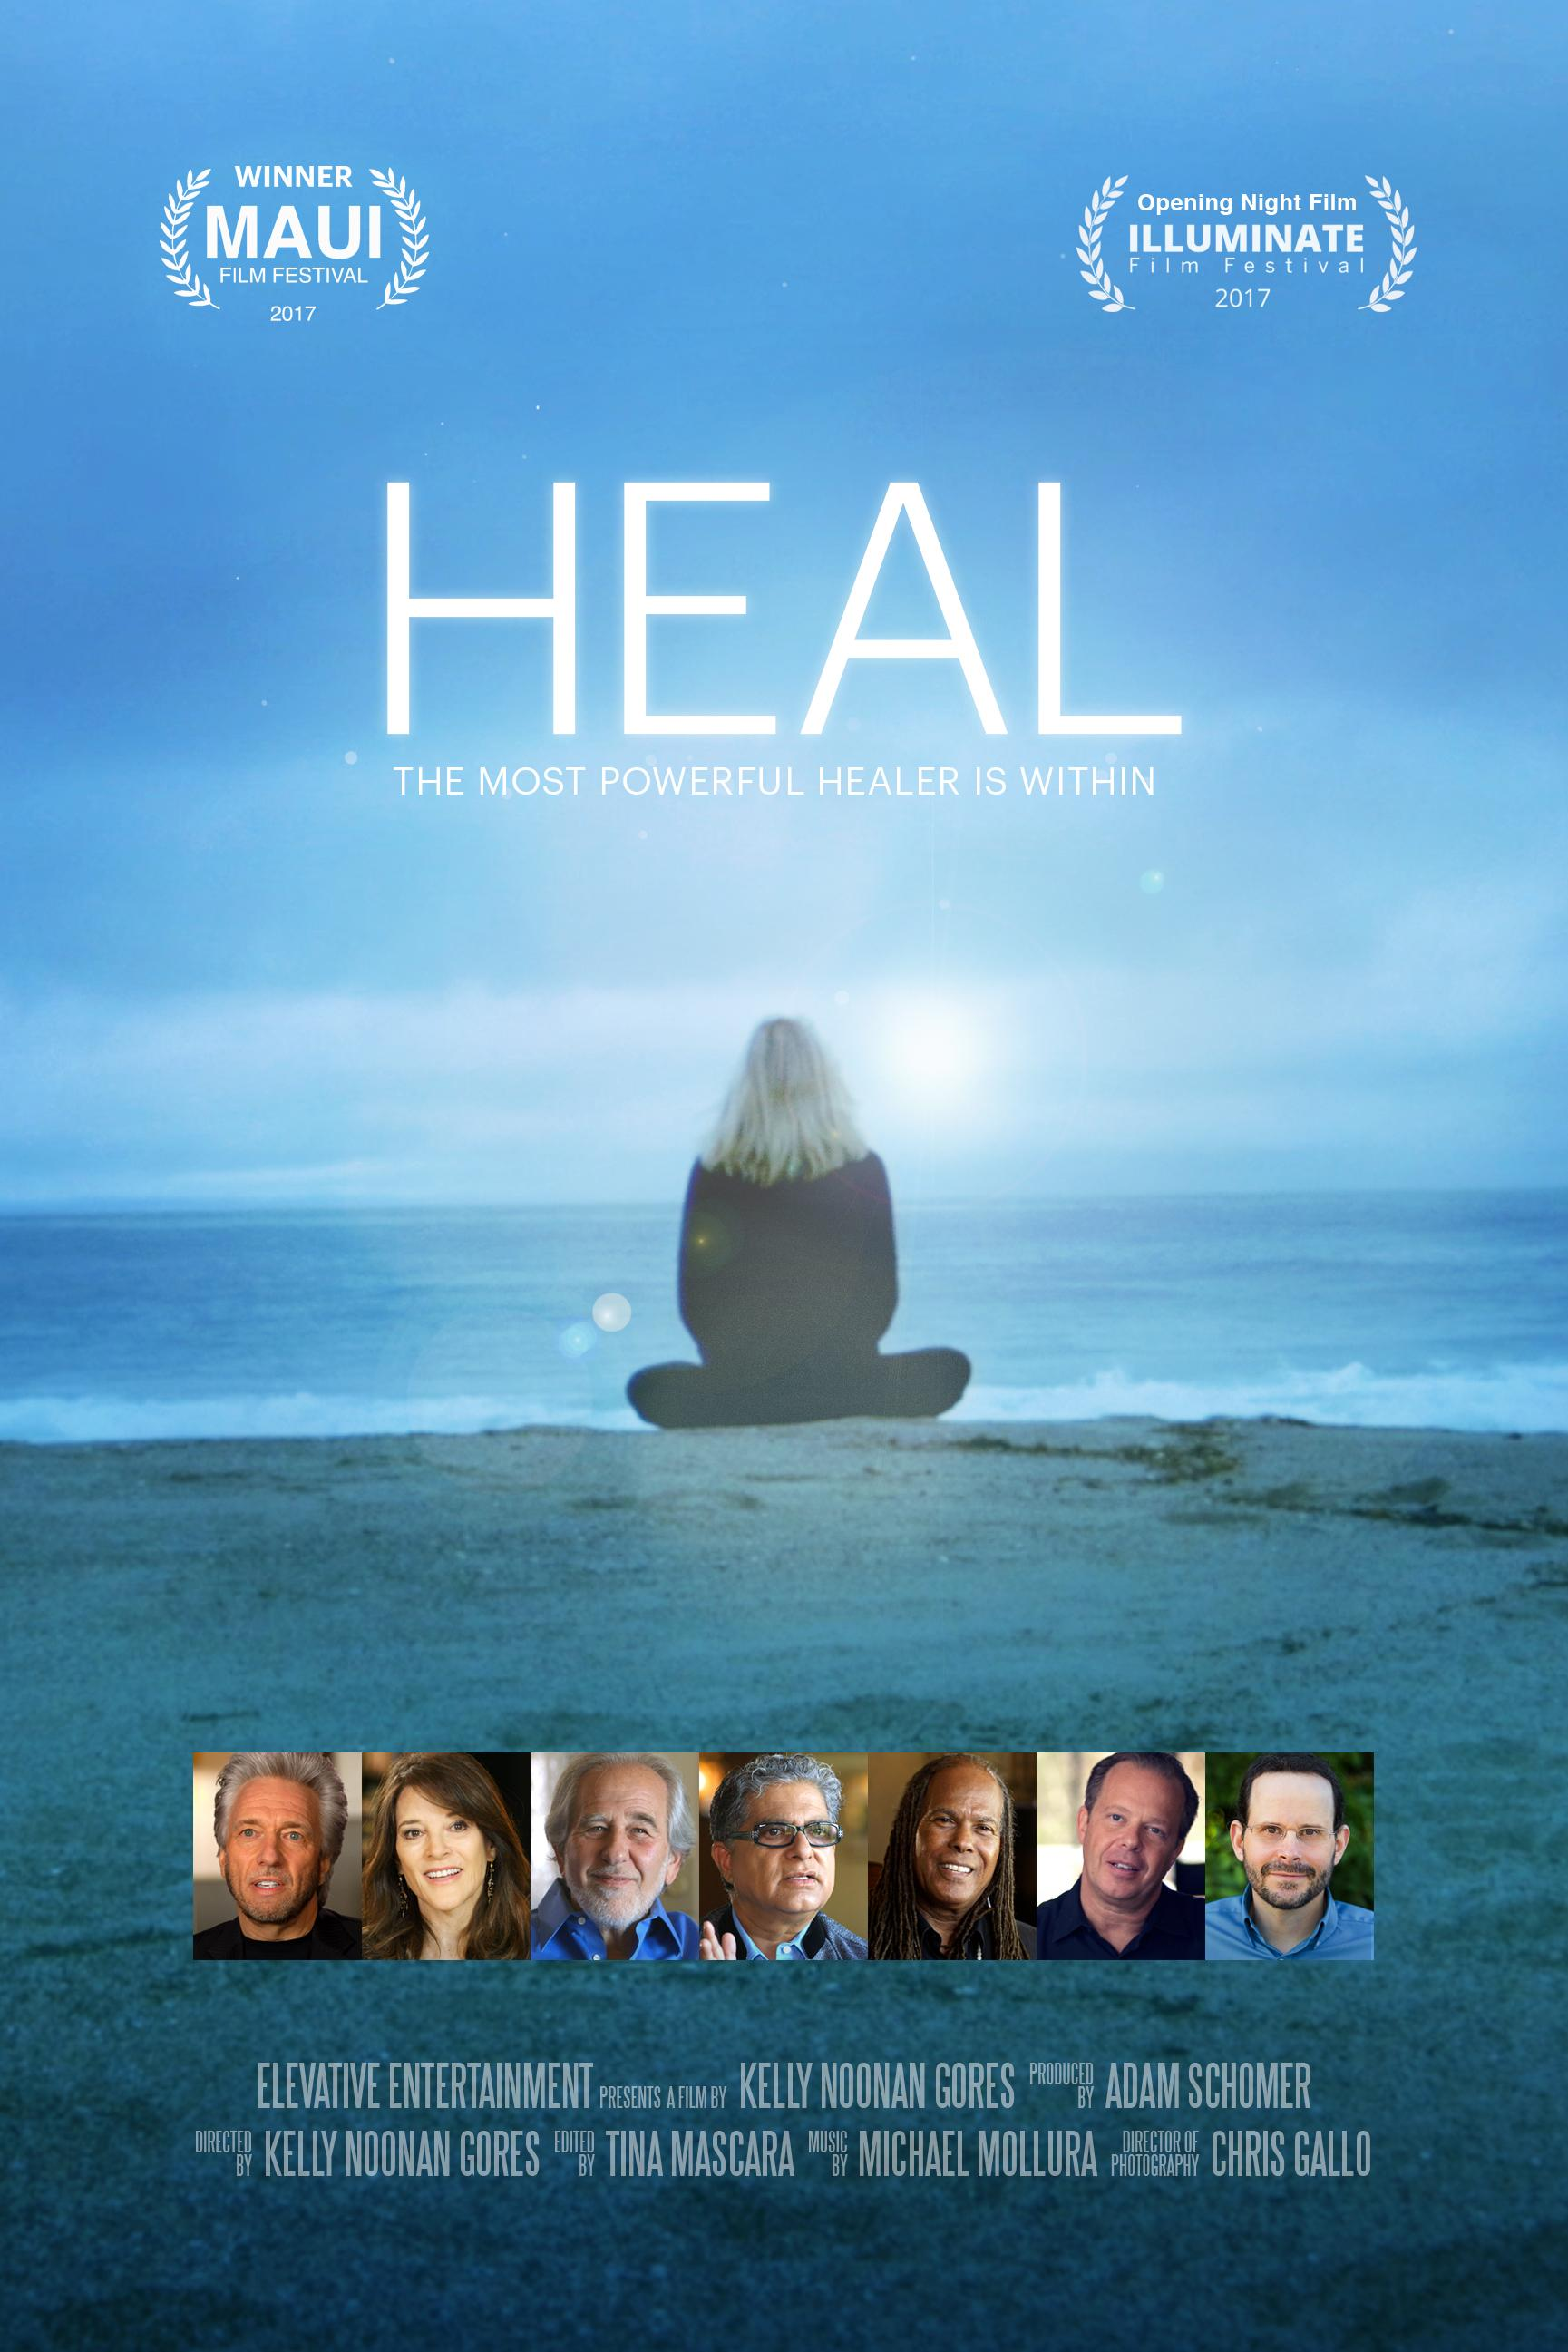 Heal Documentary - Screening & Q&A Session